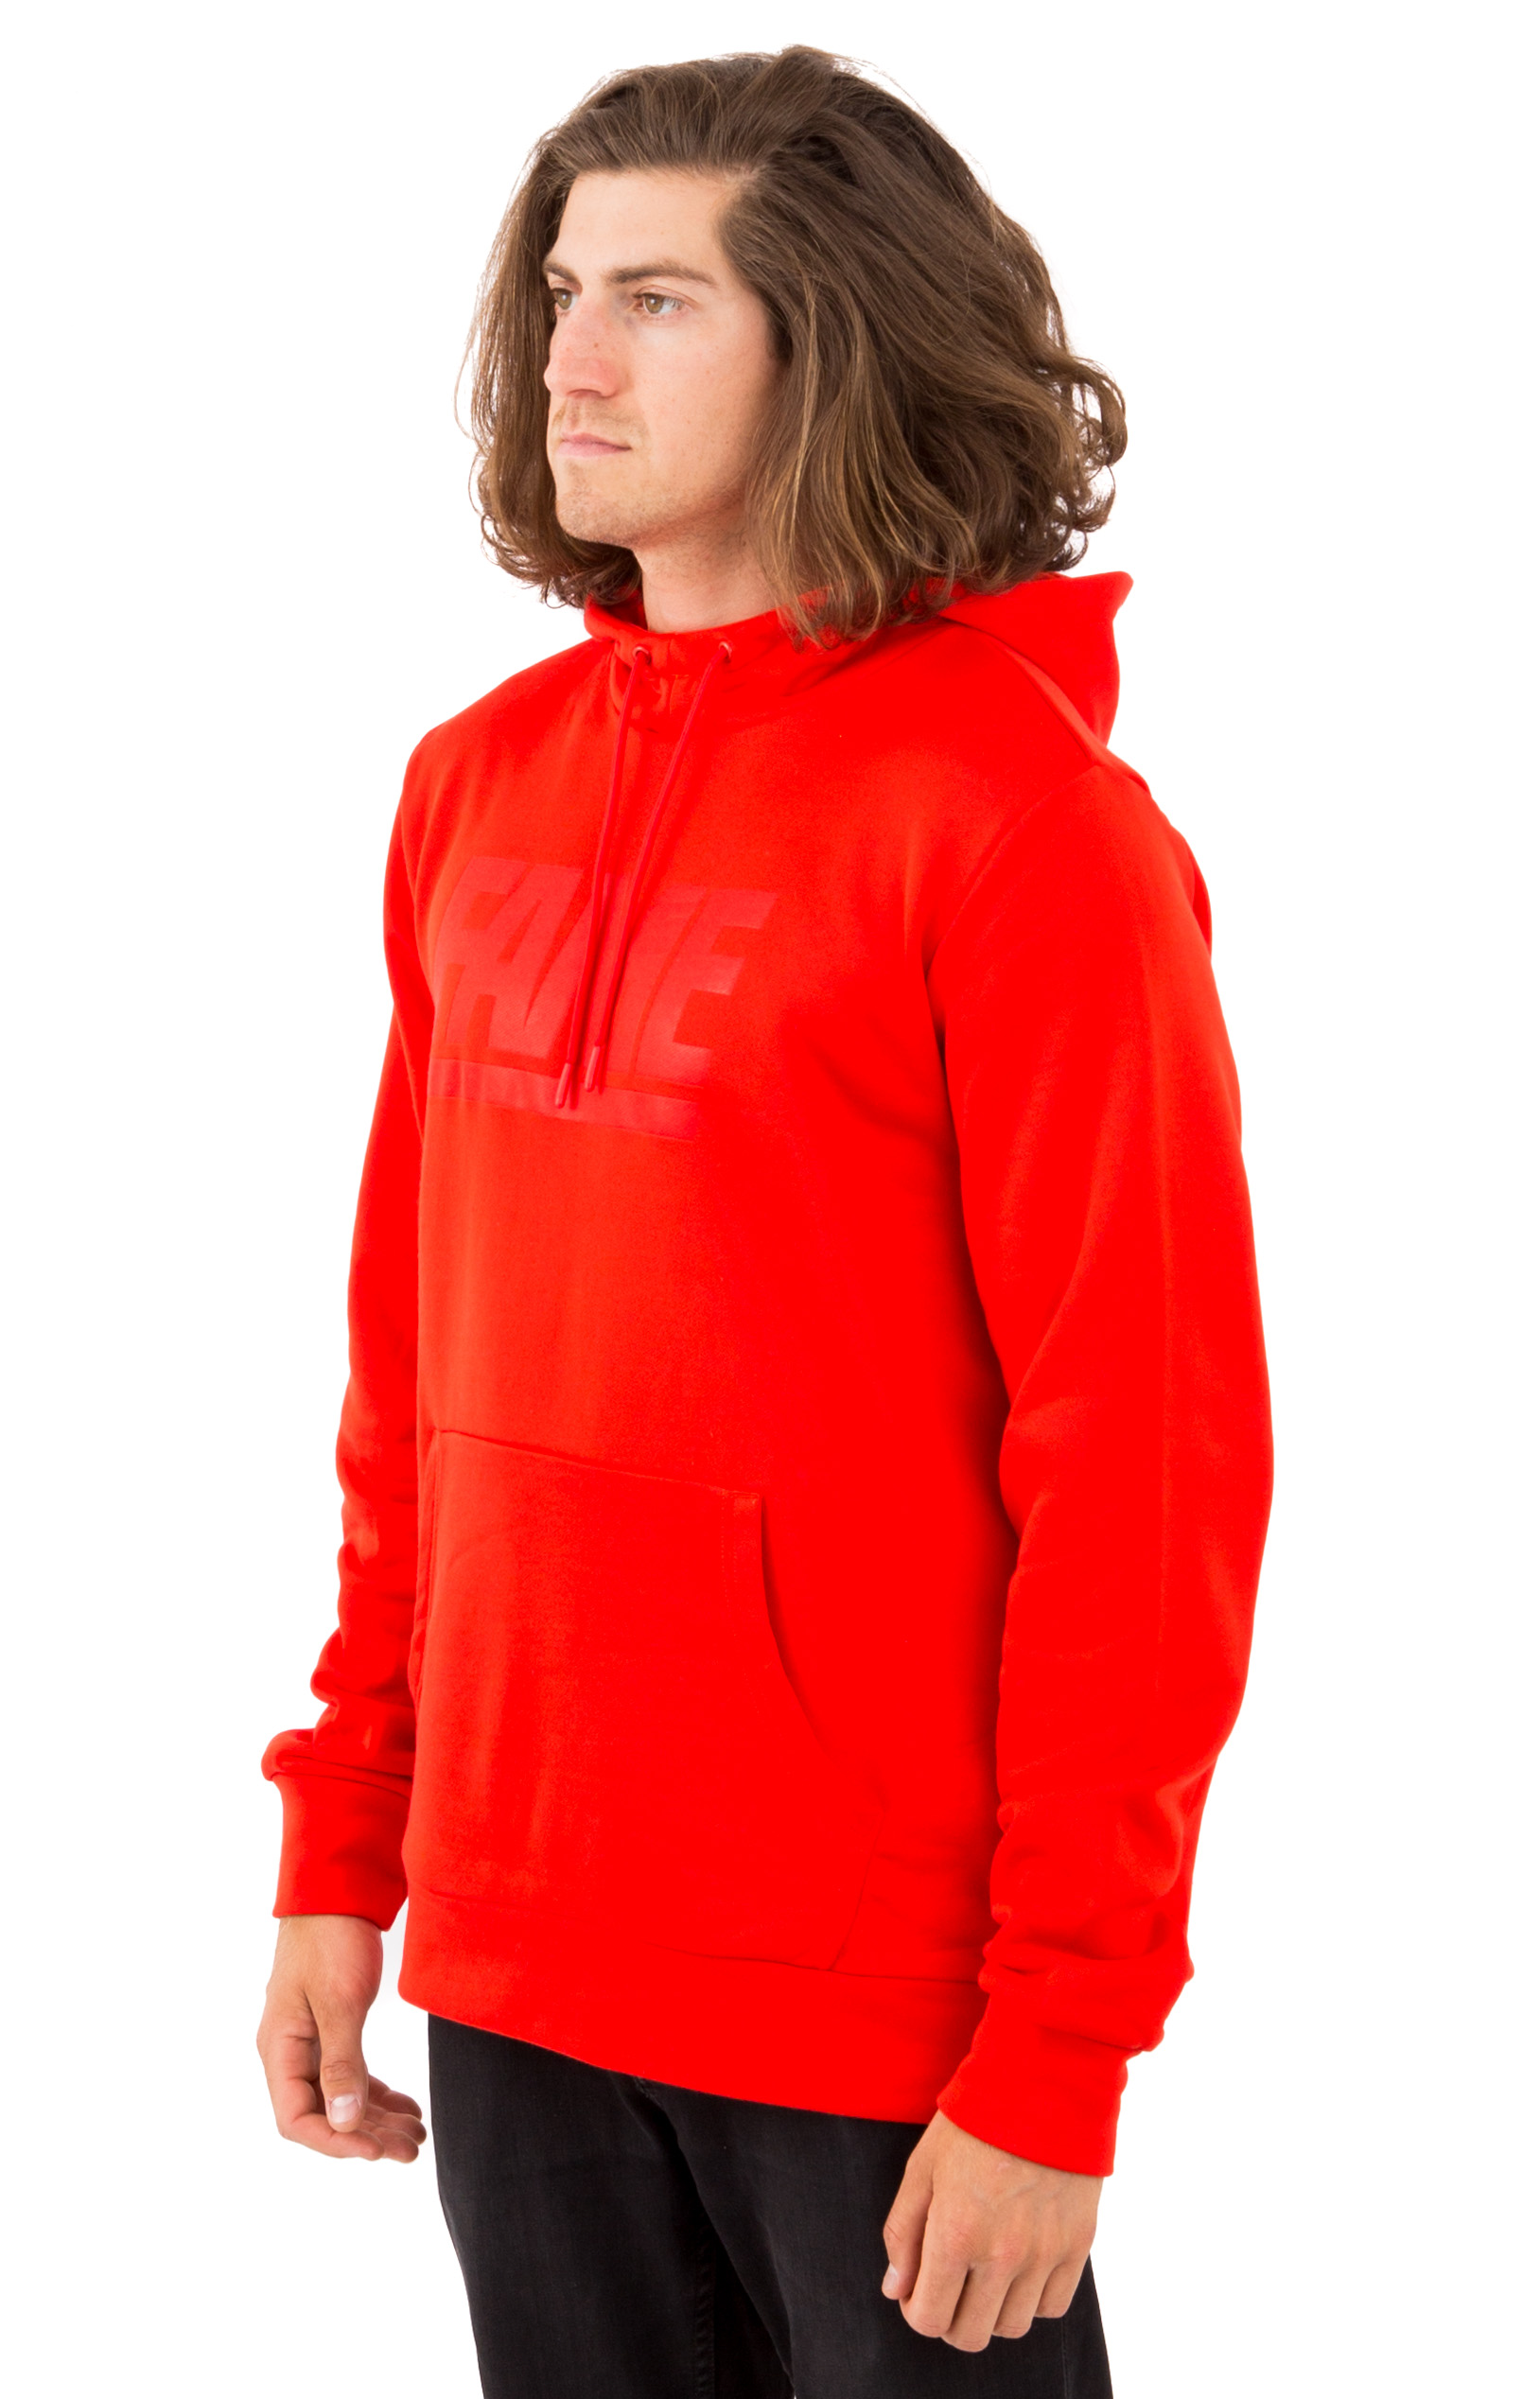 Fame Block Press Pullover Hoodie - Red 2